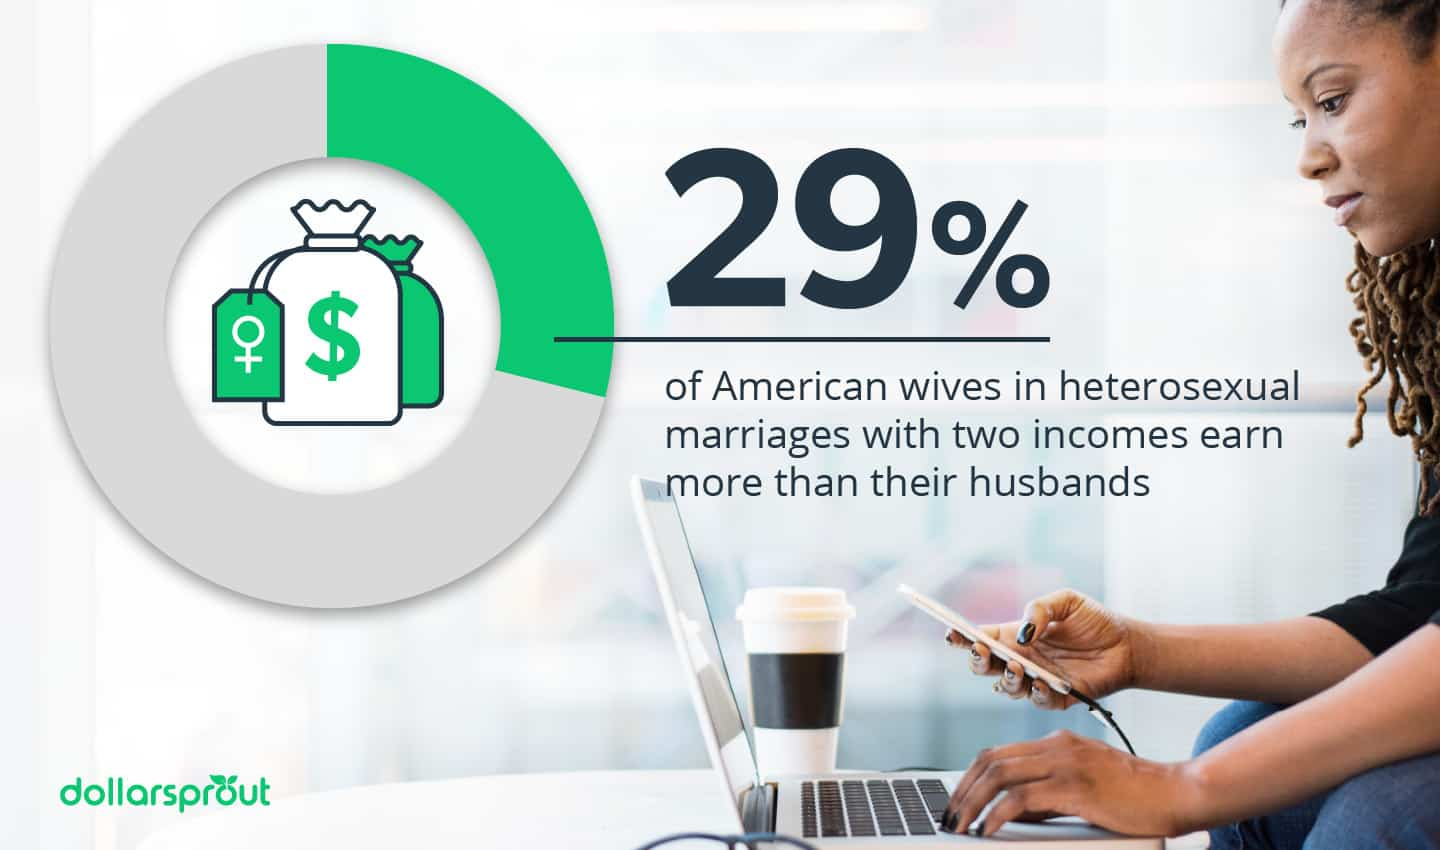 29% of American wives earn more than their husbands